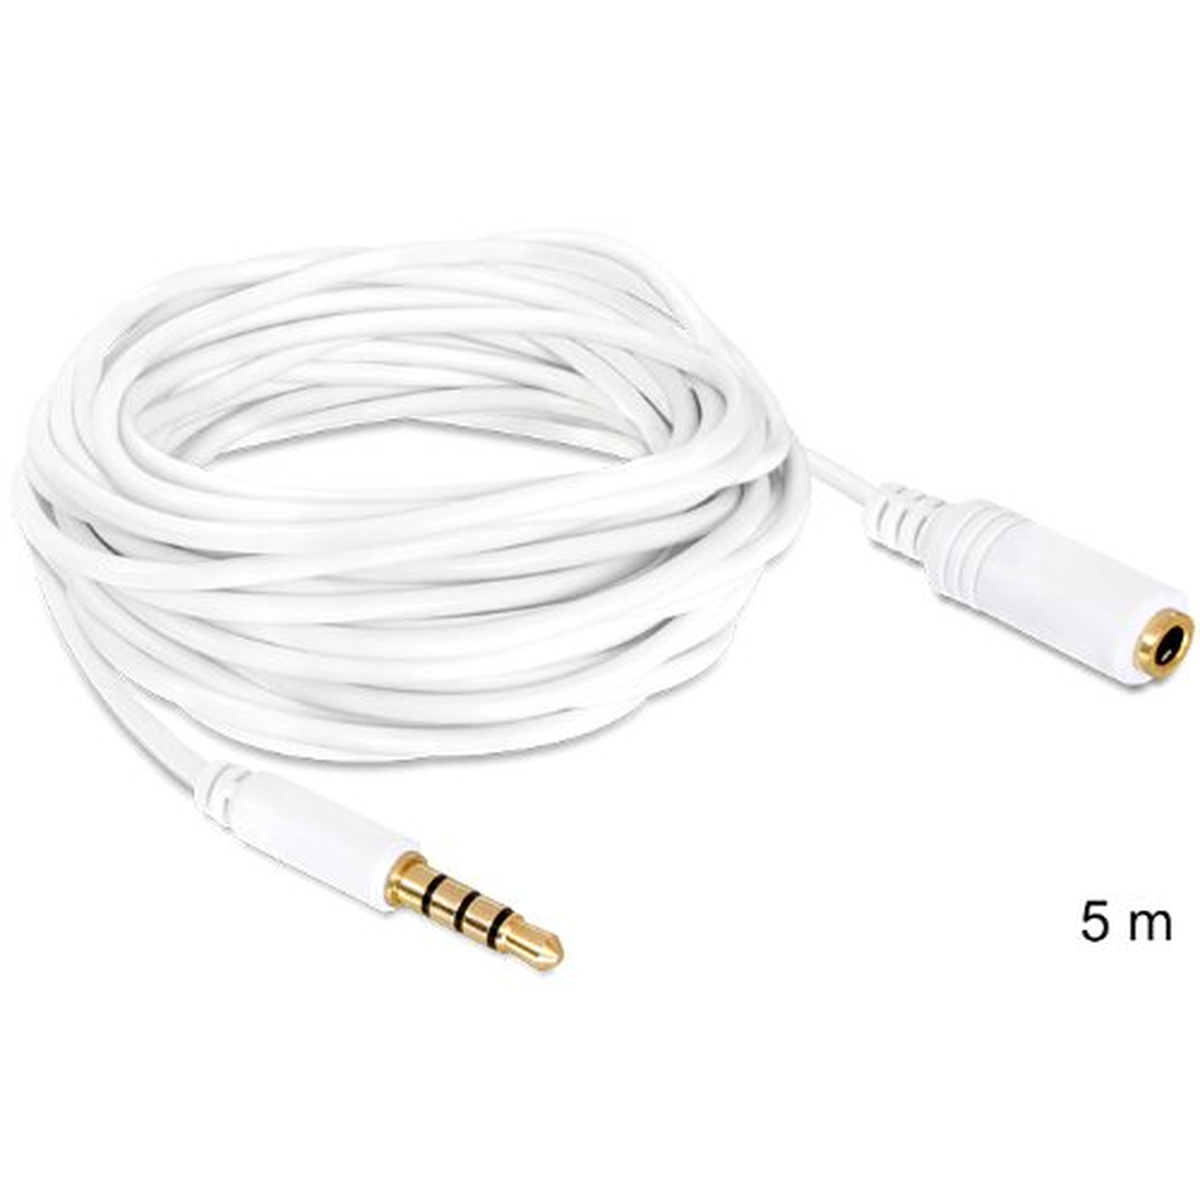 DeLOCK Kabel Audio Klinke 3,5 mm Stecker / Buchse